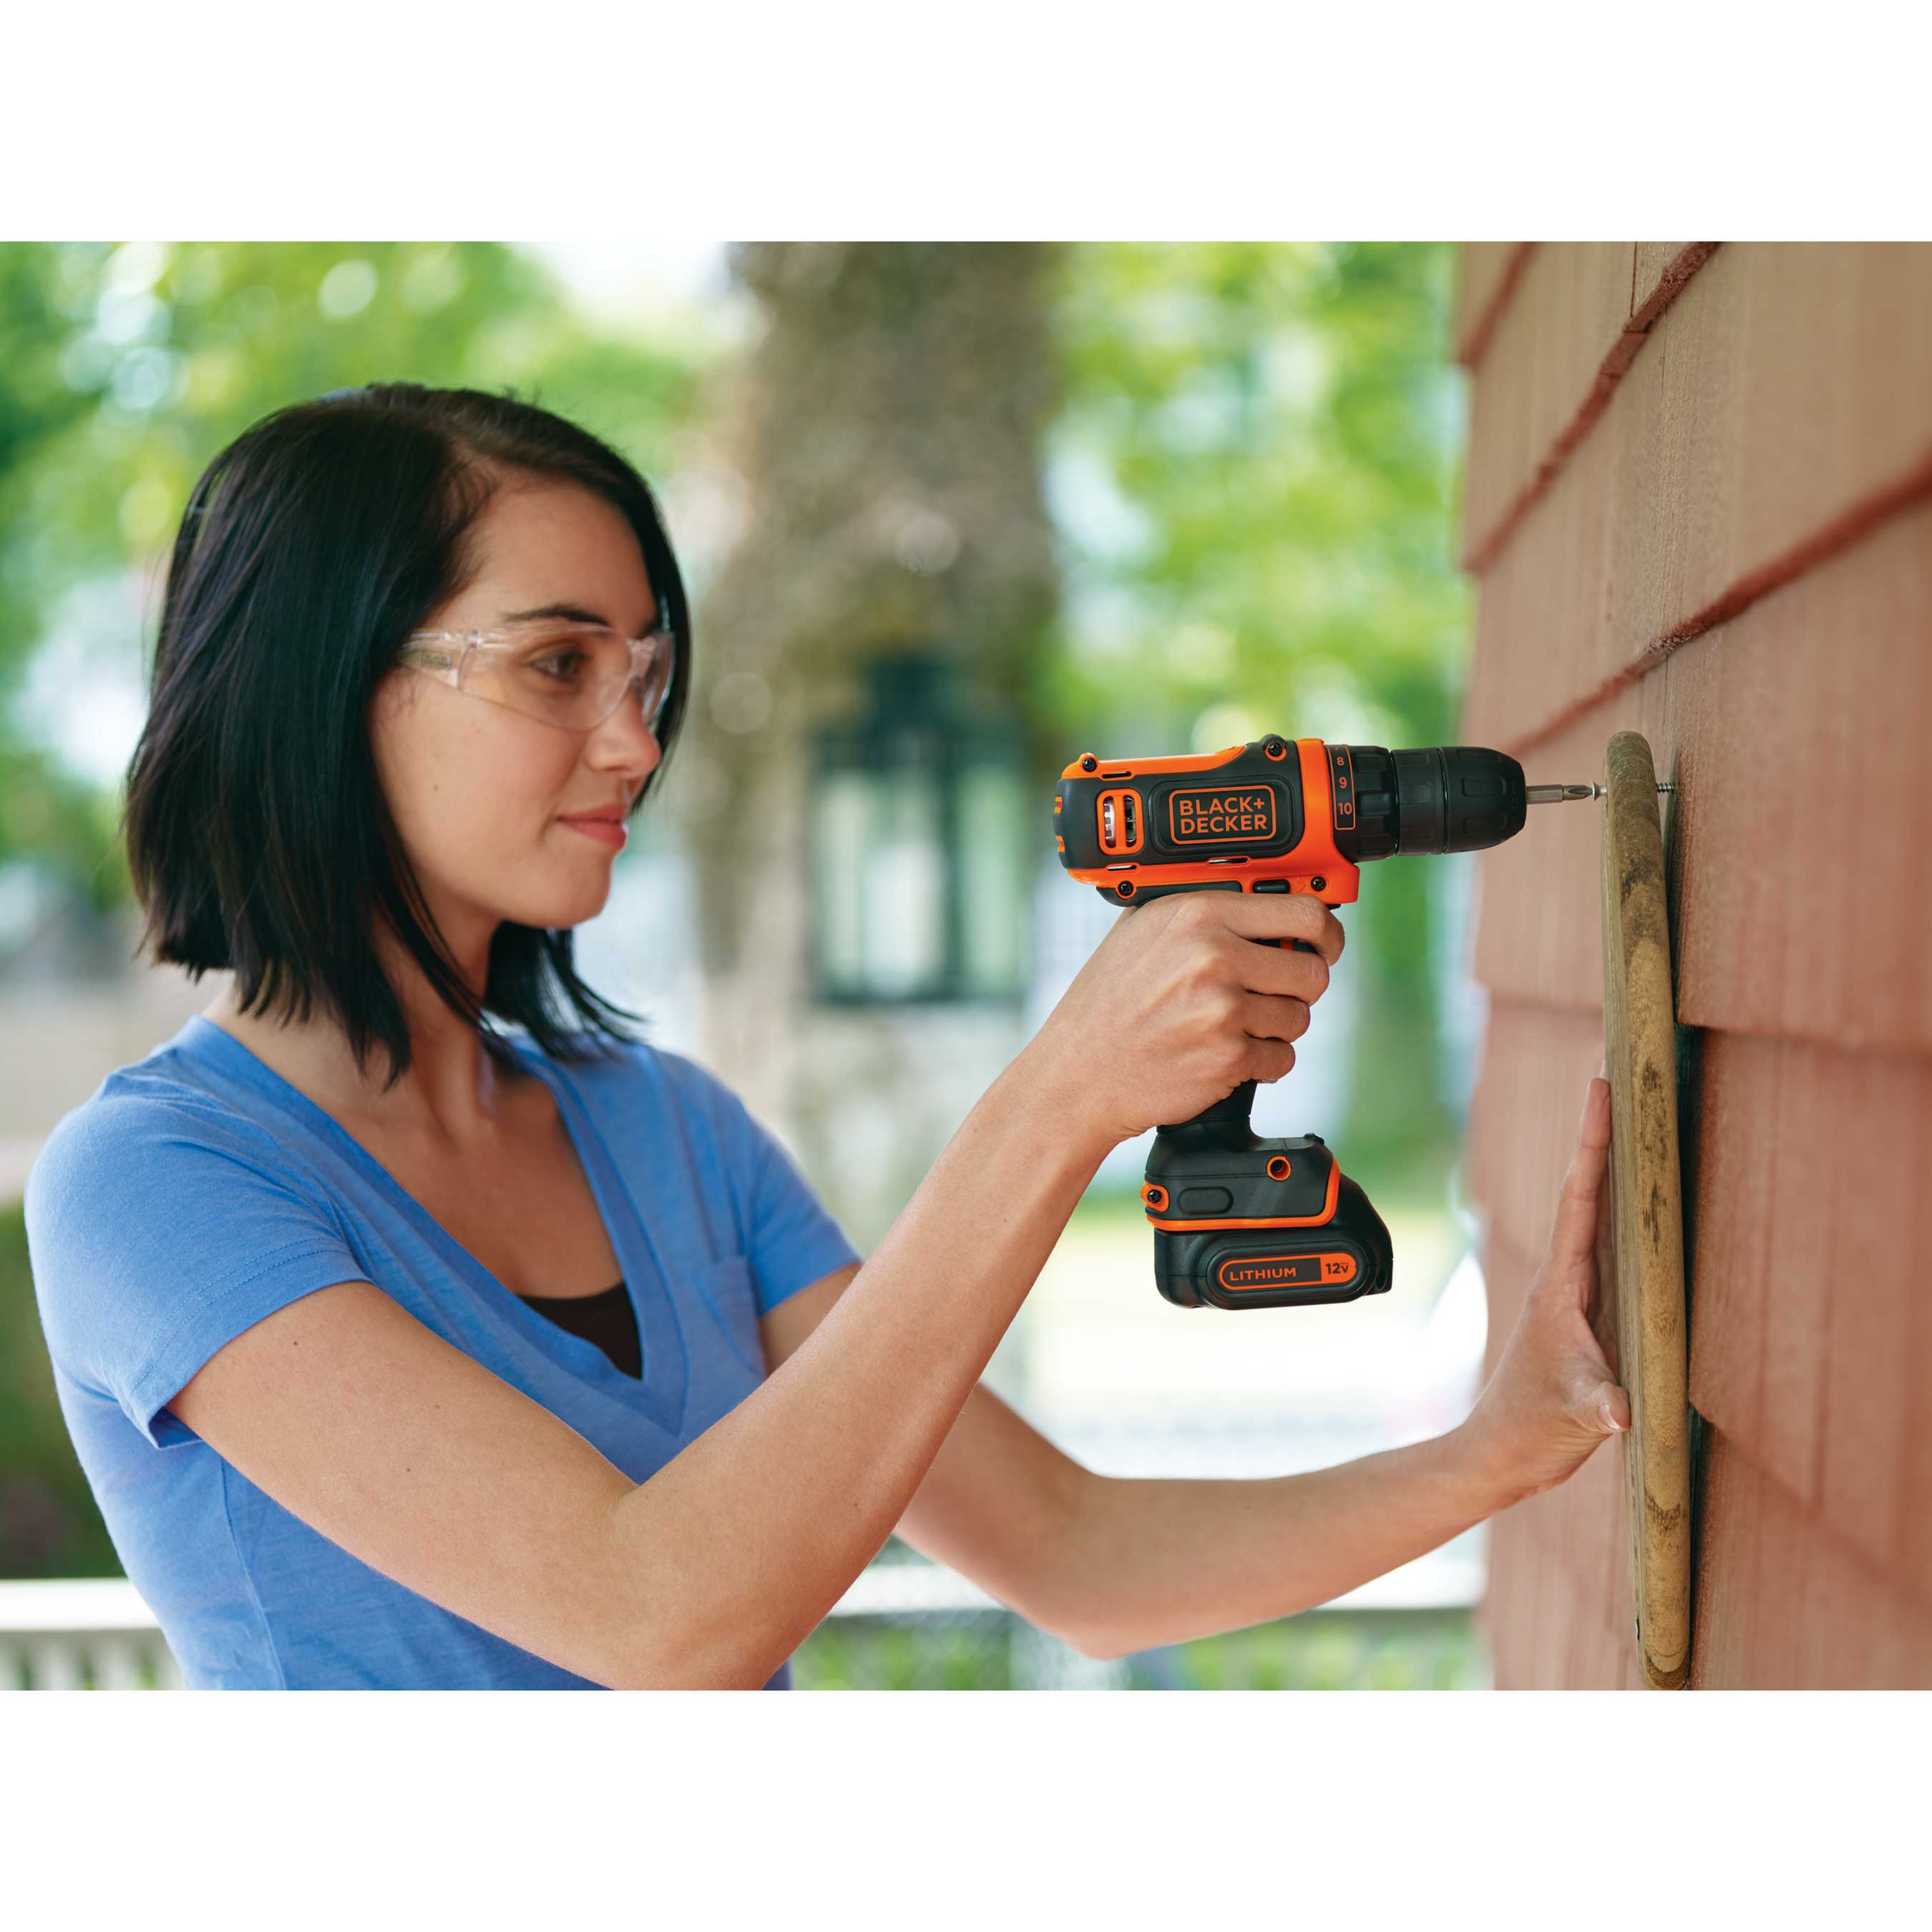 BLACK+DECKER's new 12V MAX* Cordless Lithium Drill is a great addition for any homeowner or DIYer.